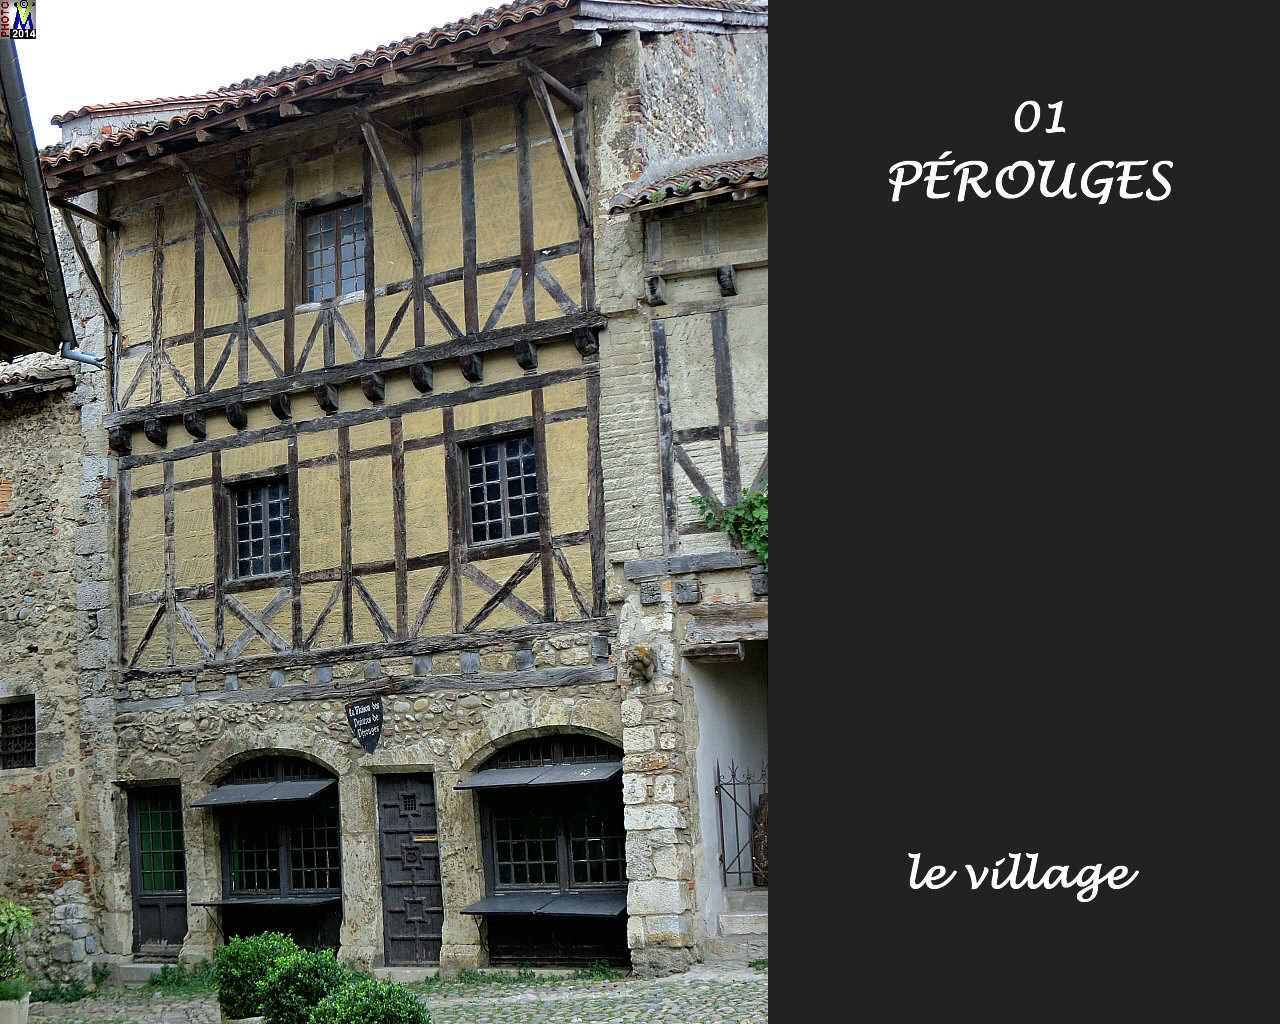 01PEROUGES_village_128.jpg